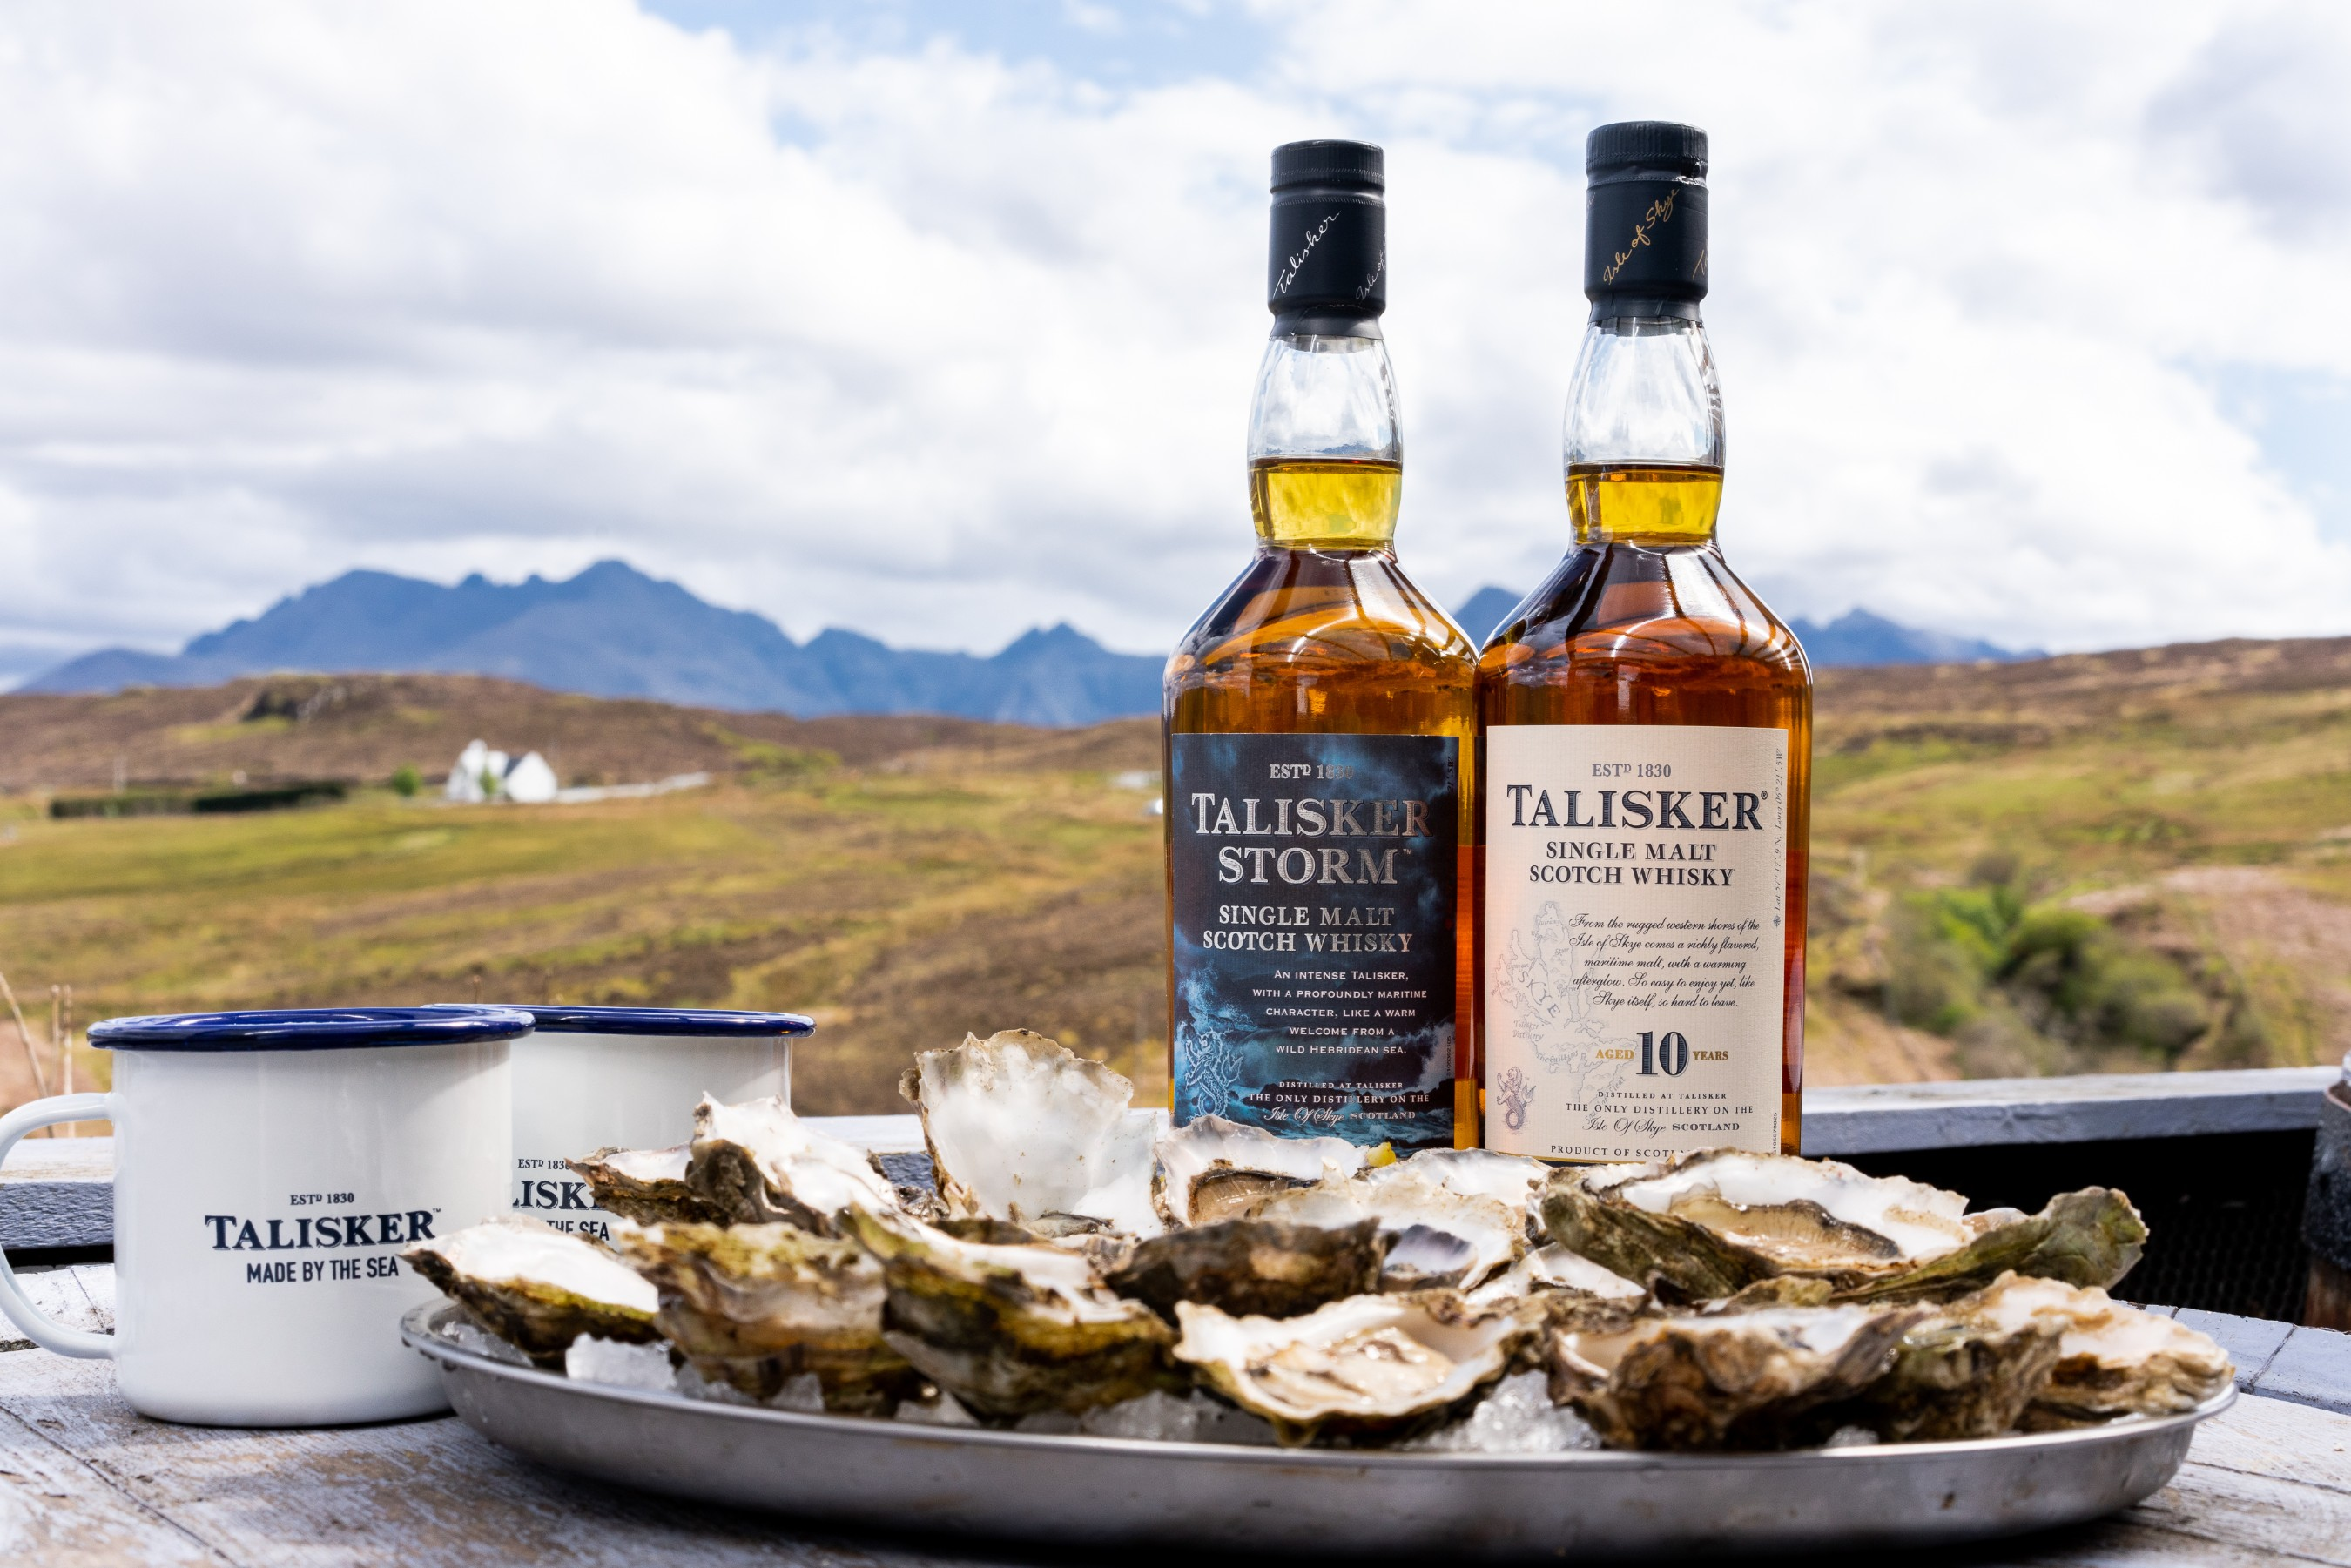 Made by the sea on Scotland's strikingly beautiful Isle of Skye, the Talisker distillery is battered by wind and waves on the rugged coastline where oysters are locally farmed & enjoyed. The waters from the nearby sea create the Single Malt's signature maritime and briny notes – making Talisker and oyster pairings a local favorite. #ShuckFromHome. Photo Credit: Philip Edsel.